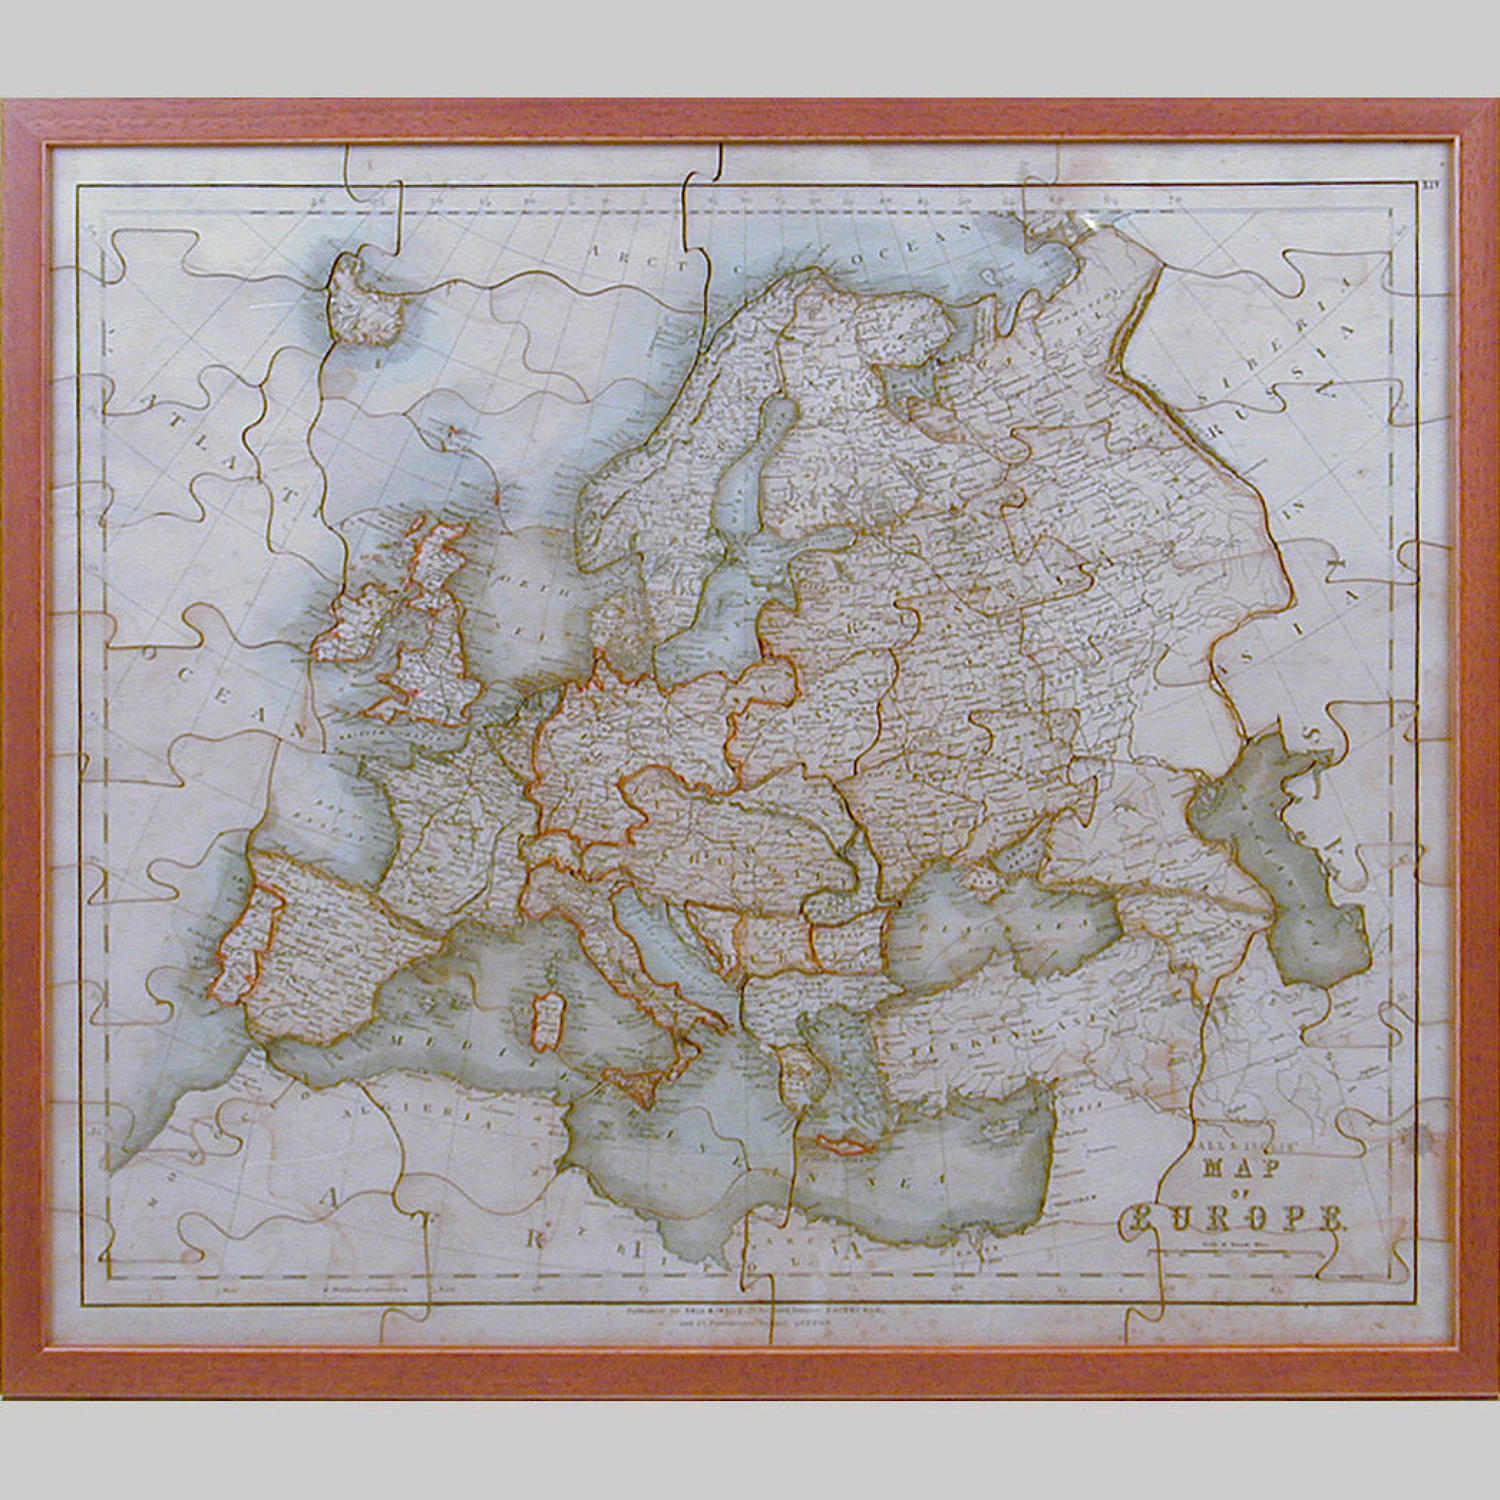 wooden jigsaw map of europe Boxed dissected jigsaw map of Europe by W.Peacock